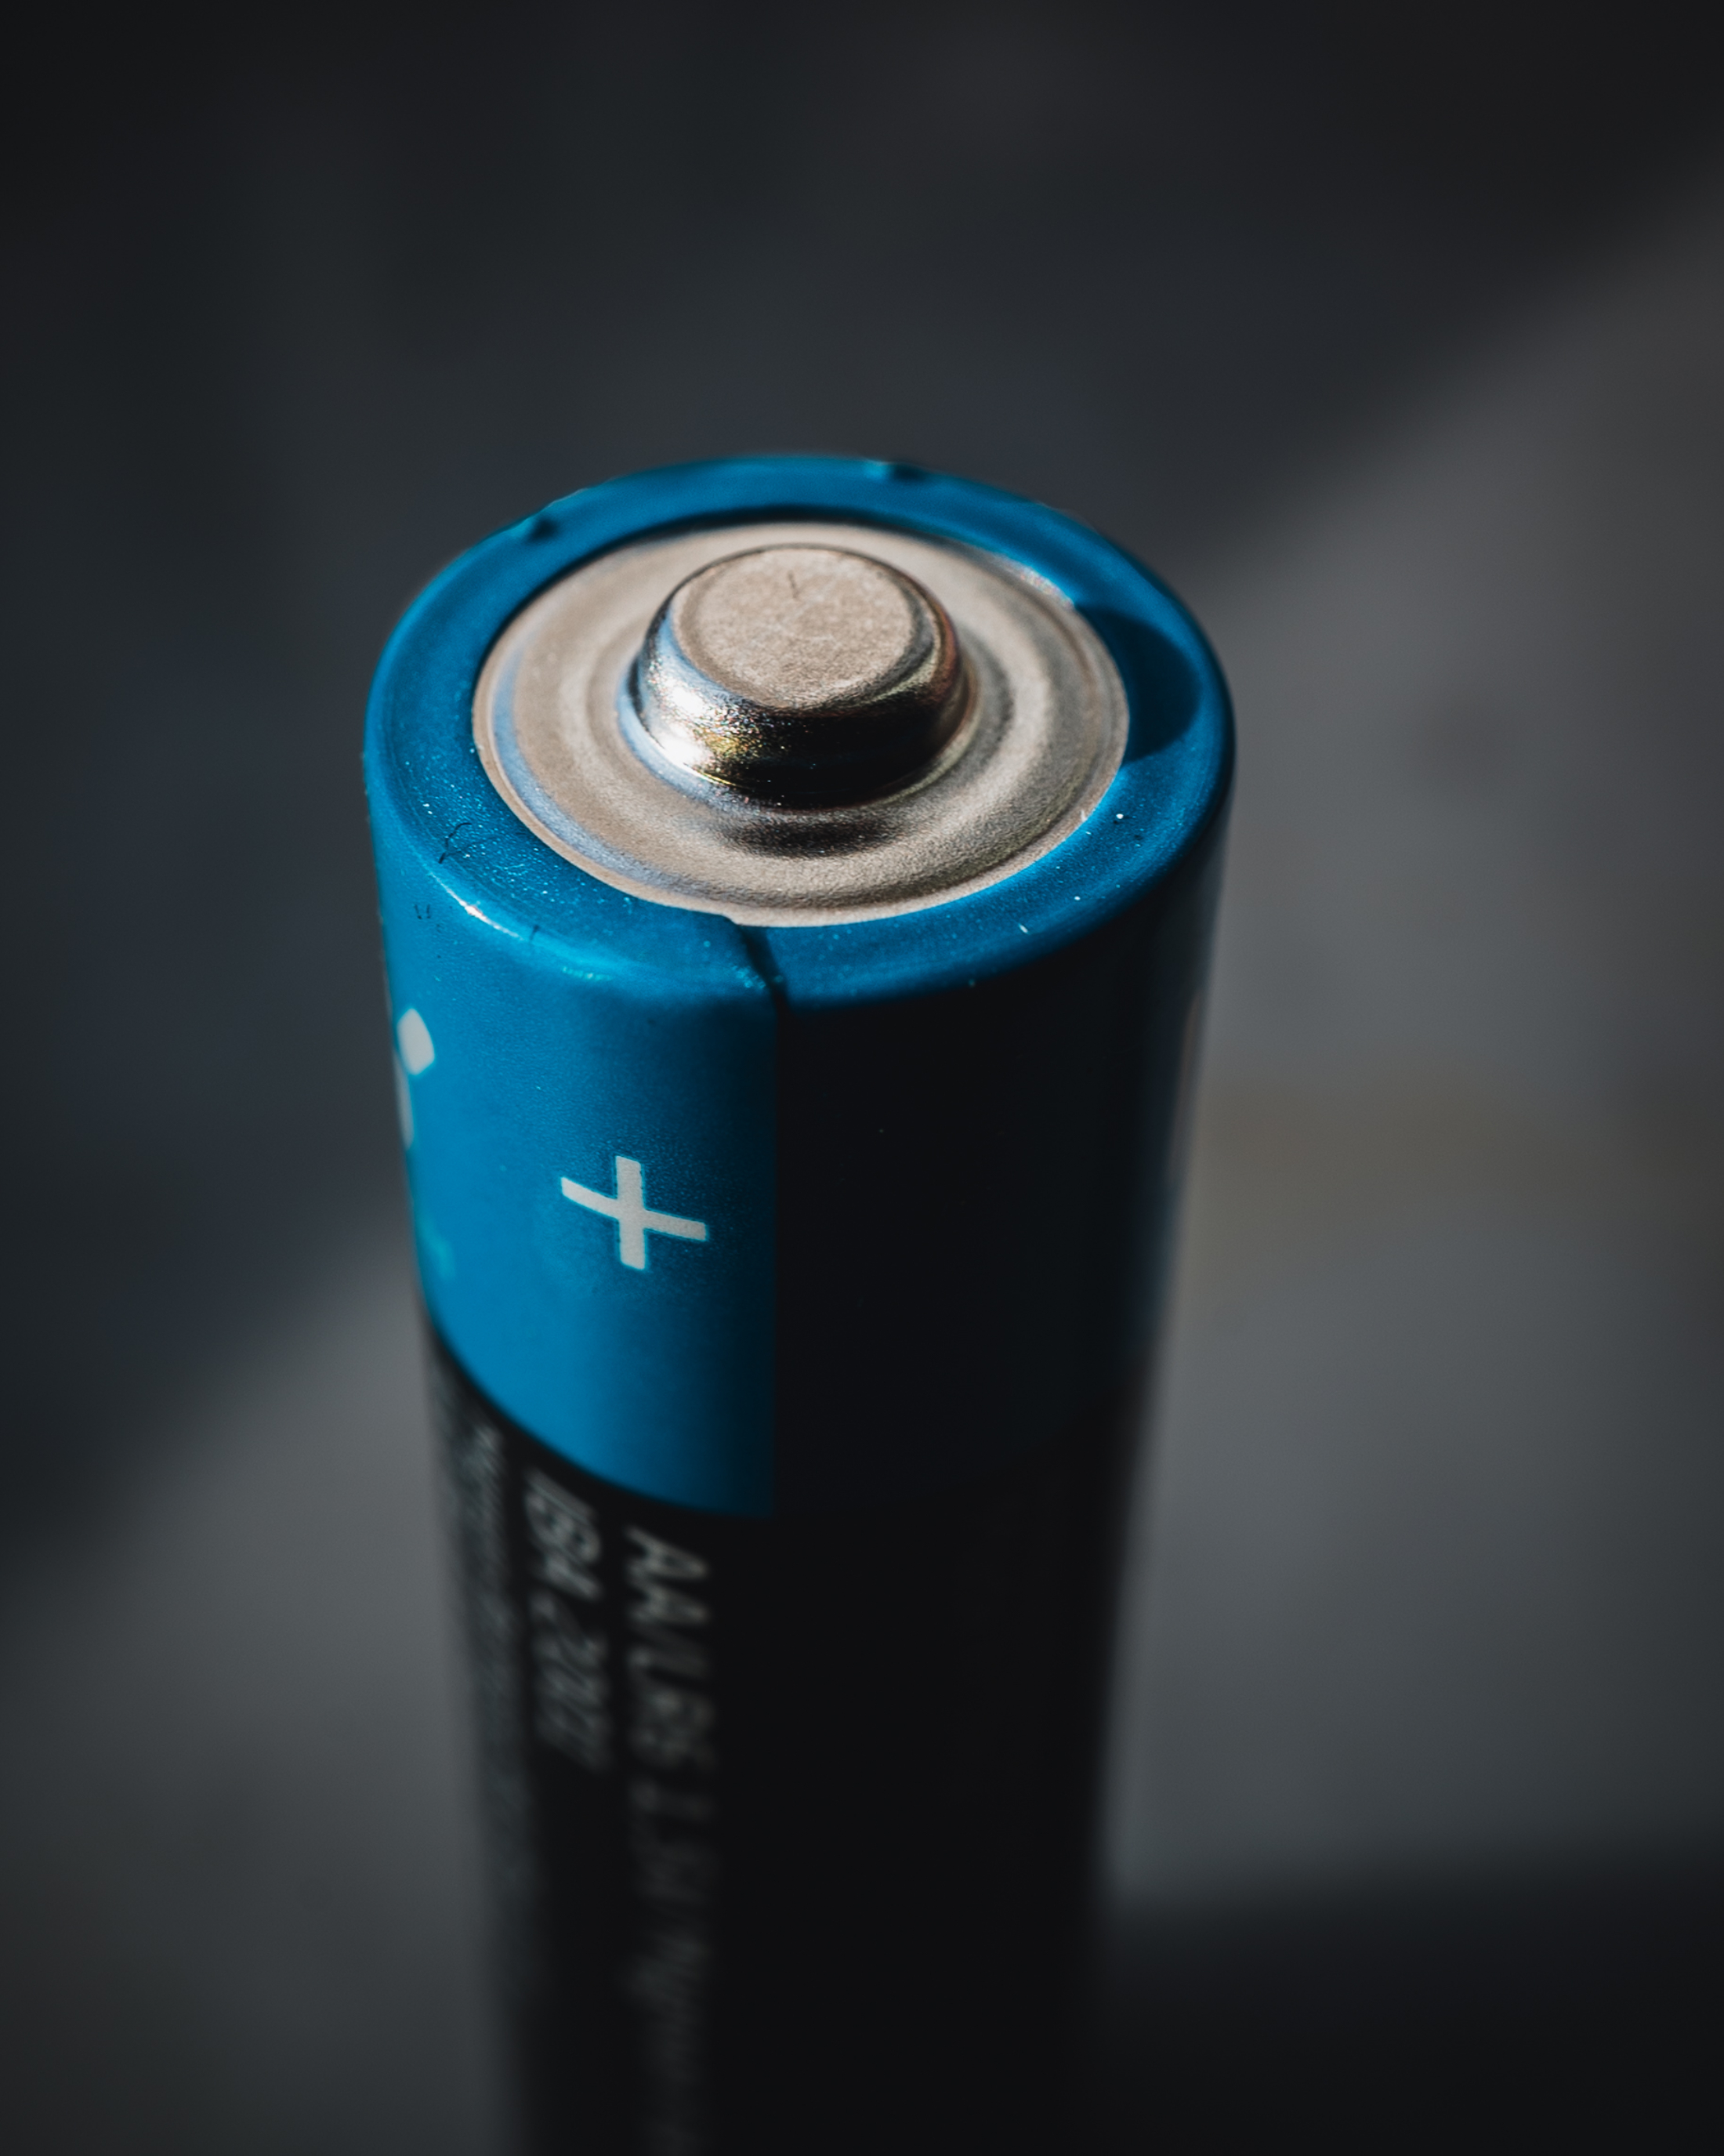 Ford Seeks to Strengthen Battery Supply Chain